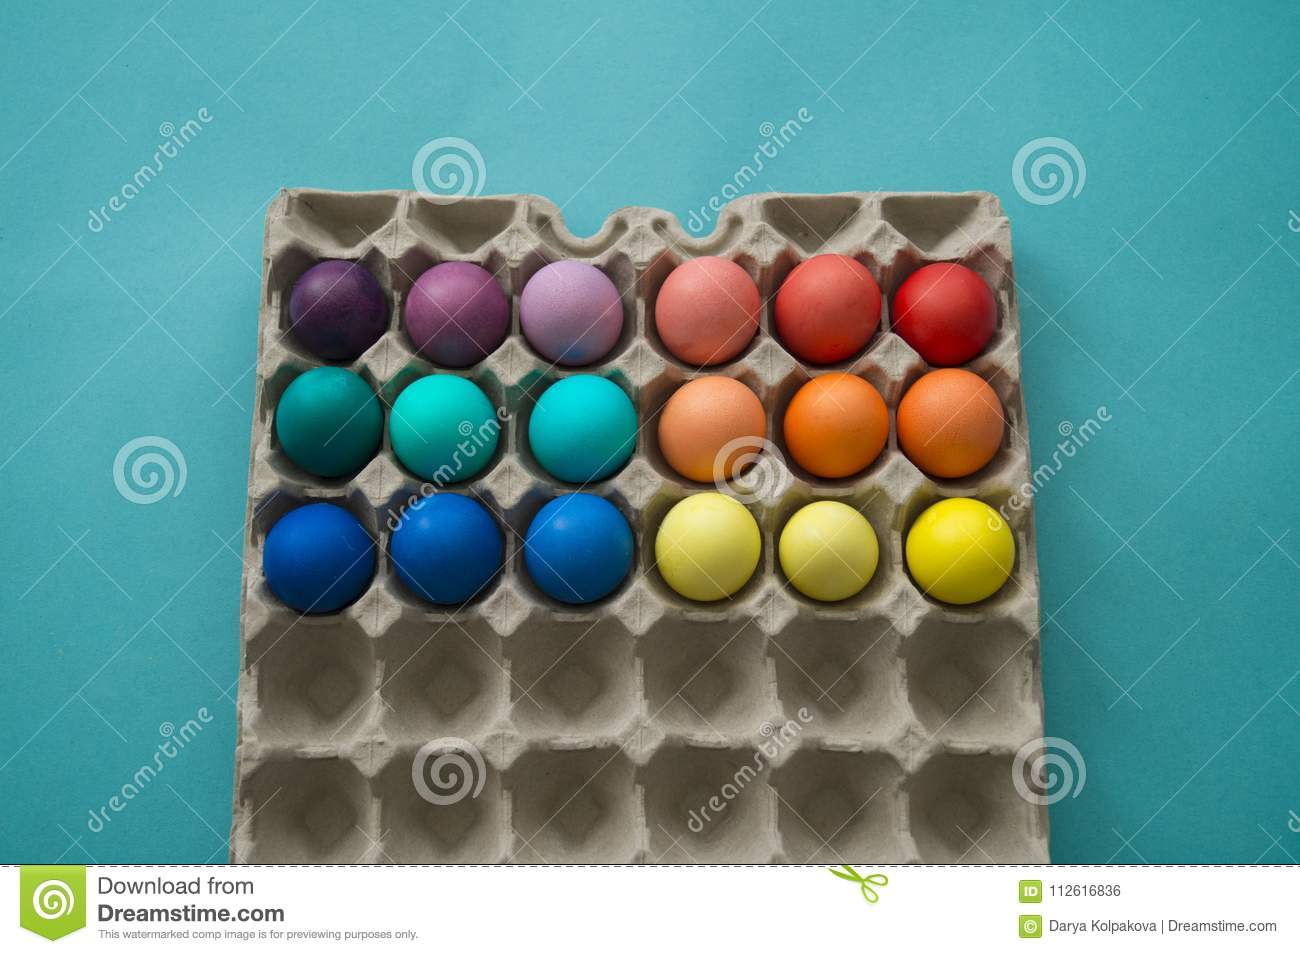 Vibrant hand dyed colorful Easter eggs in a cardboard egg box viewed